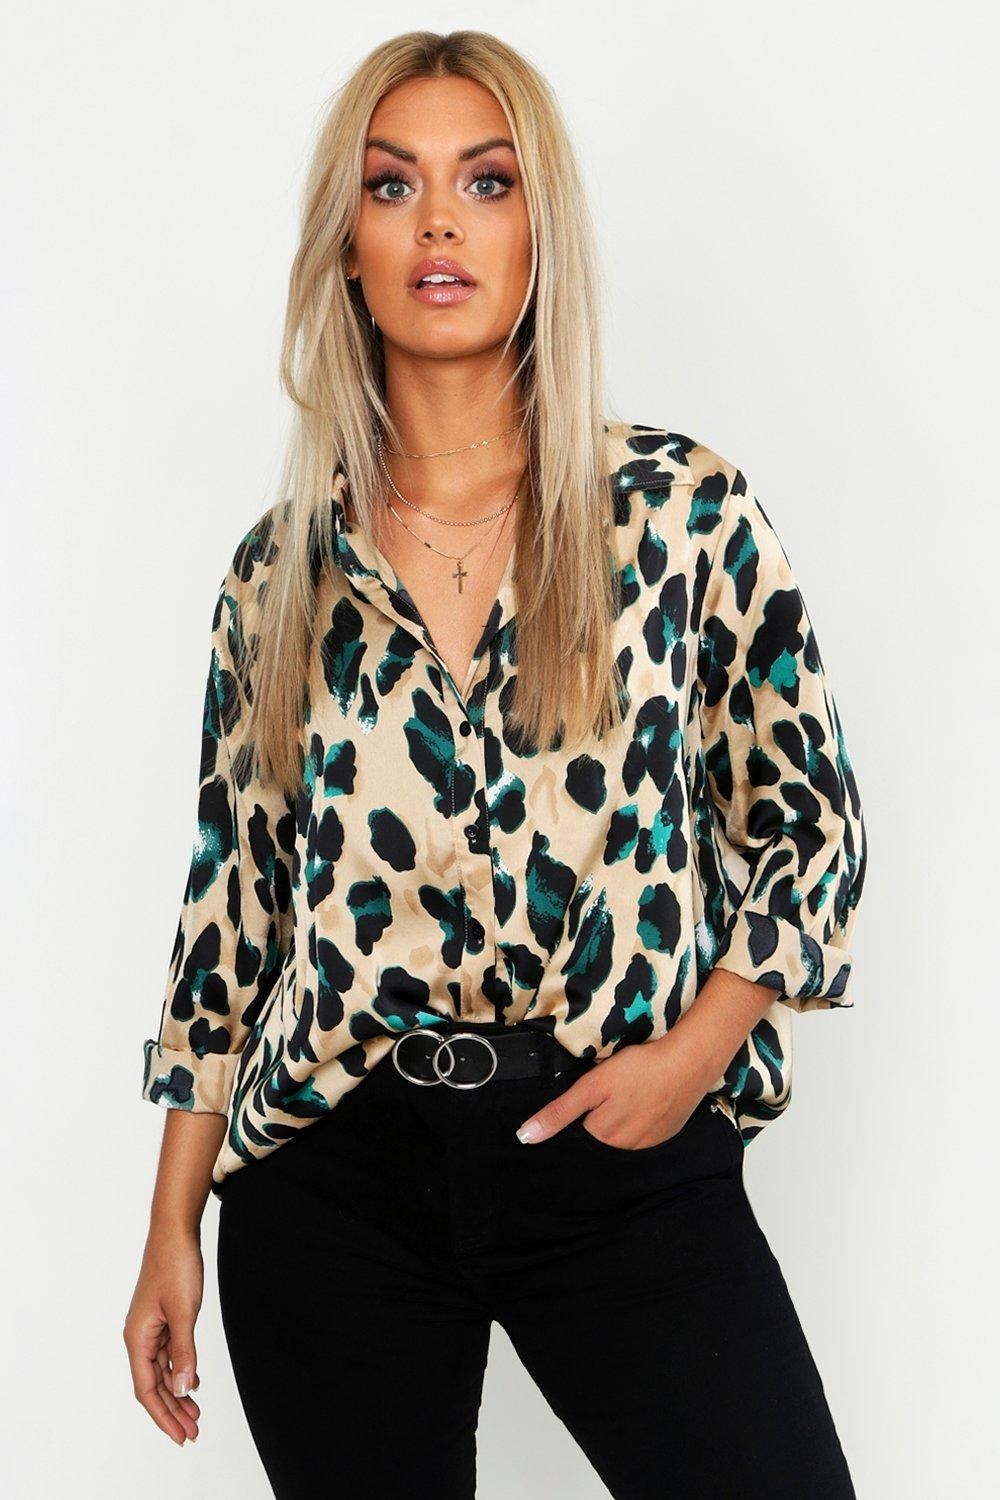 model wearing brown and blue leopard print button up